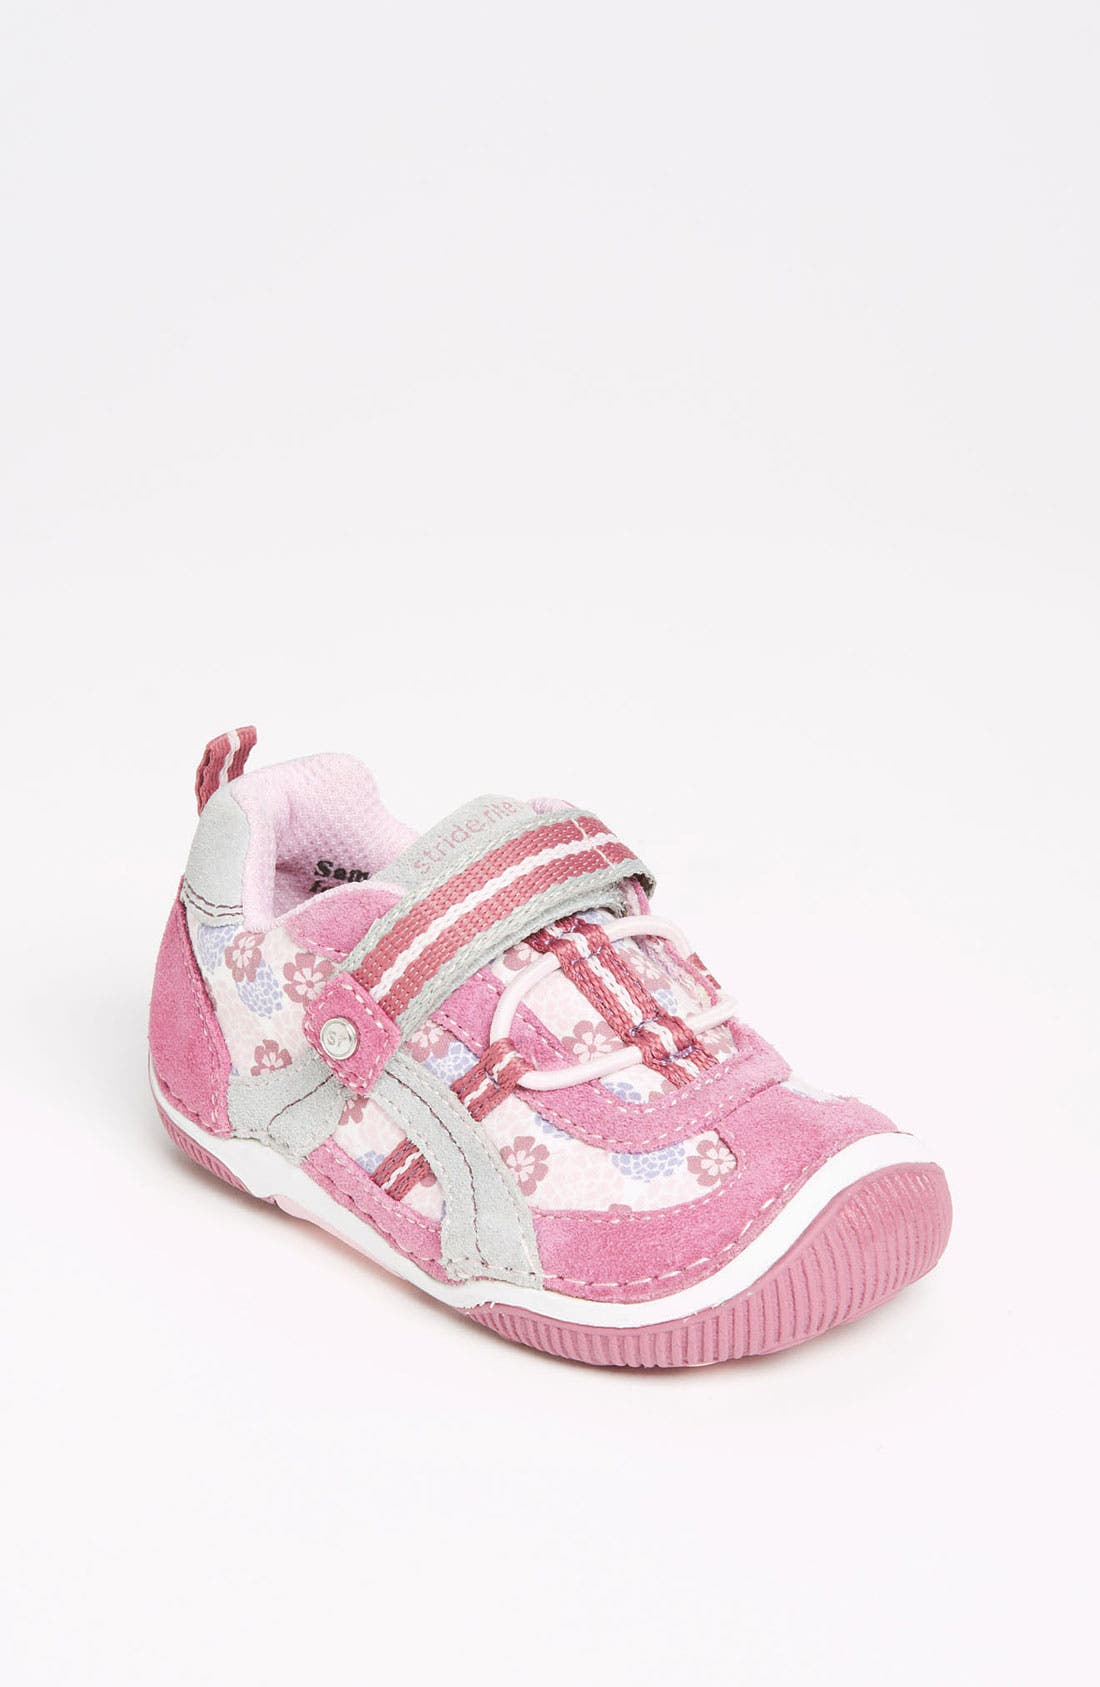 Main Image - Stride Rite 'Maive' Sneaker (Baby, Walker & Toddler)